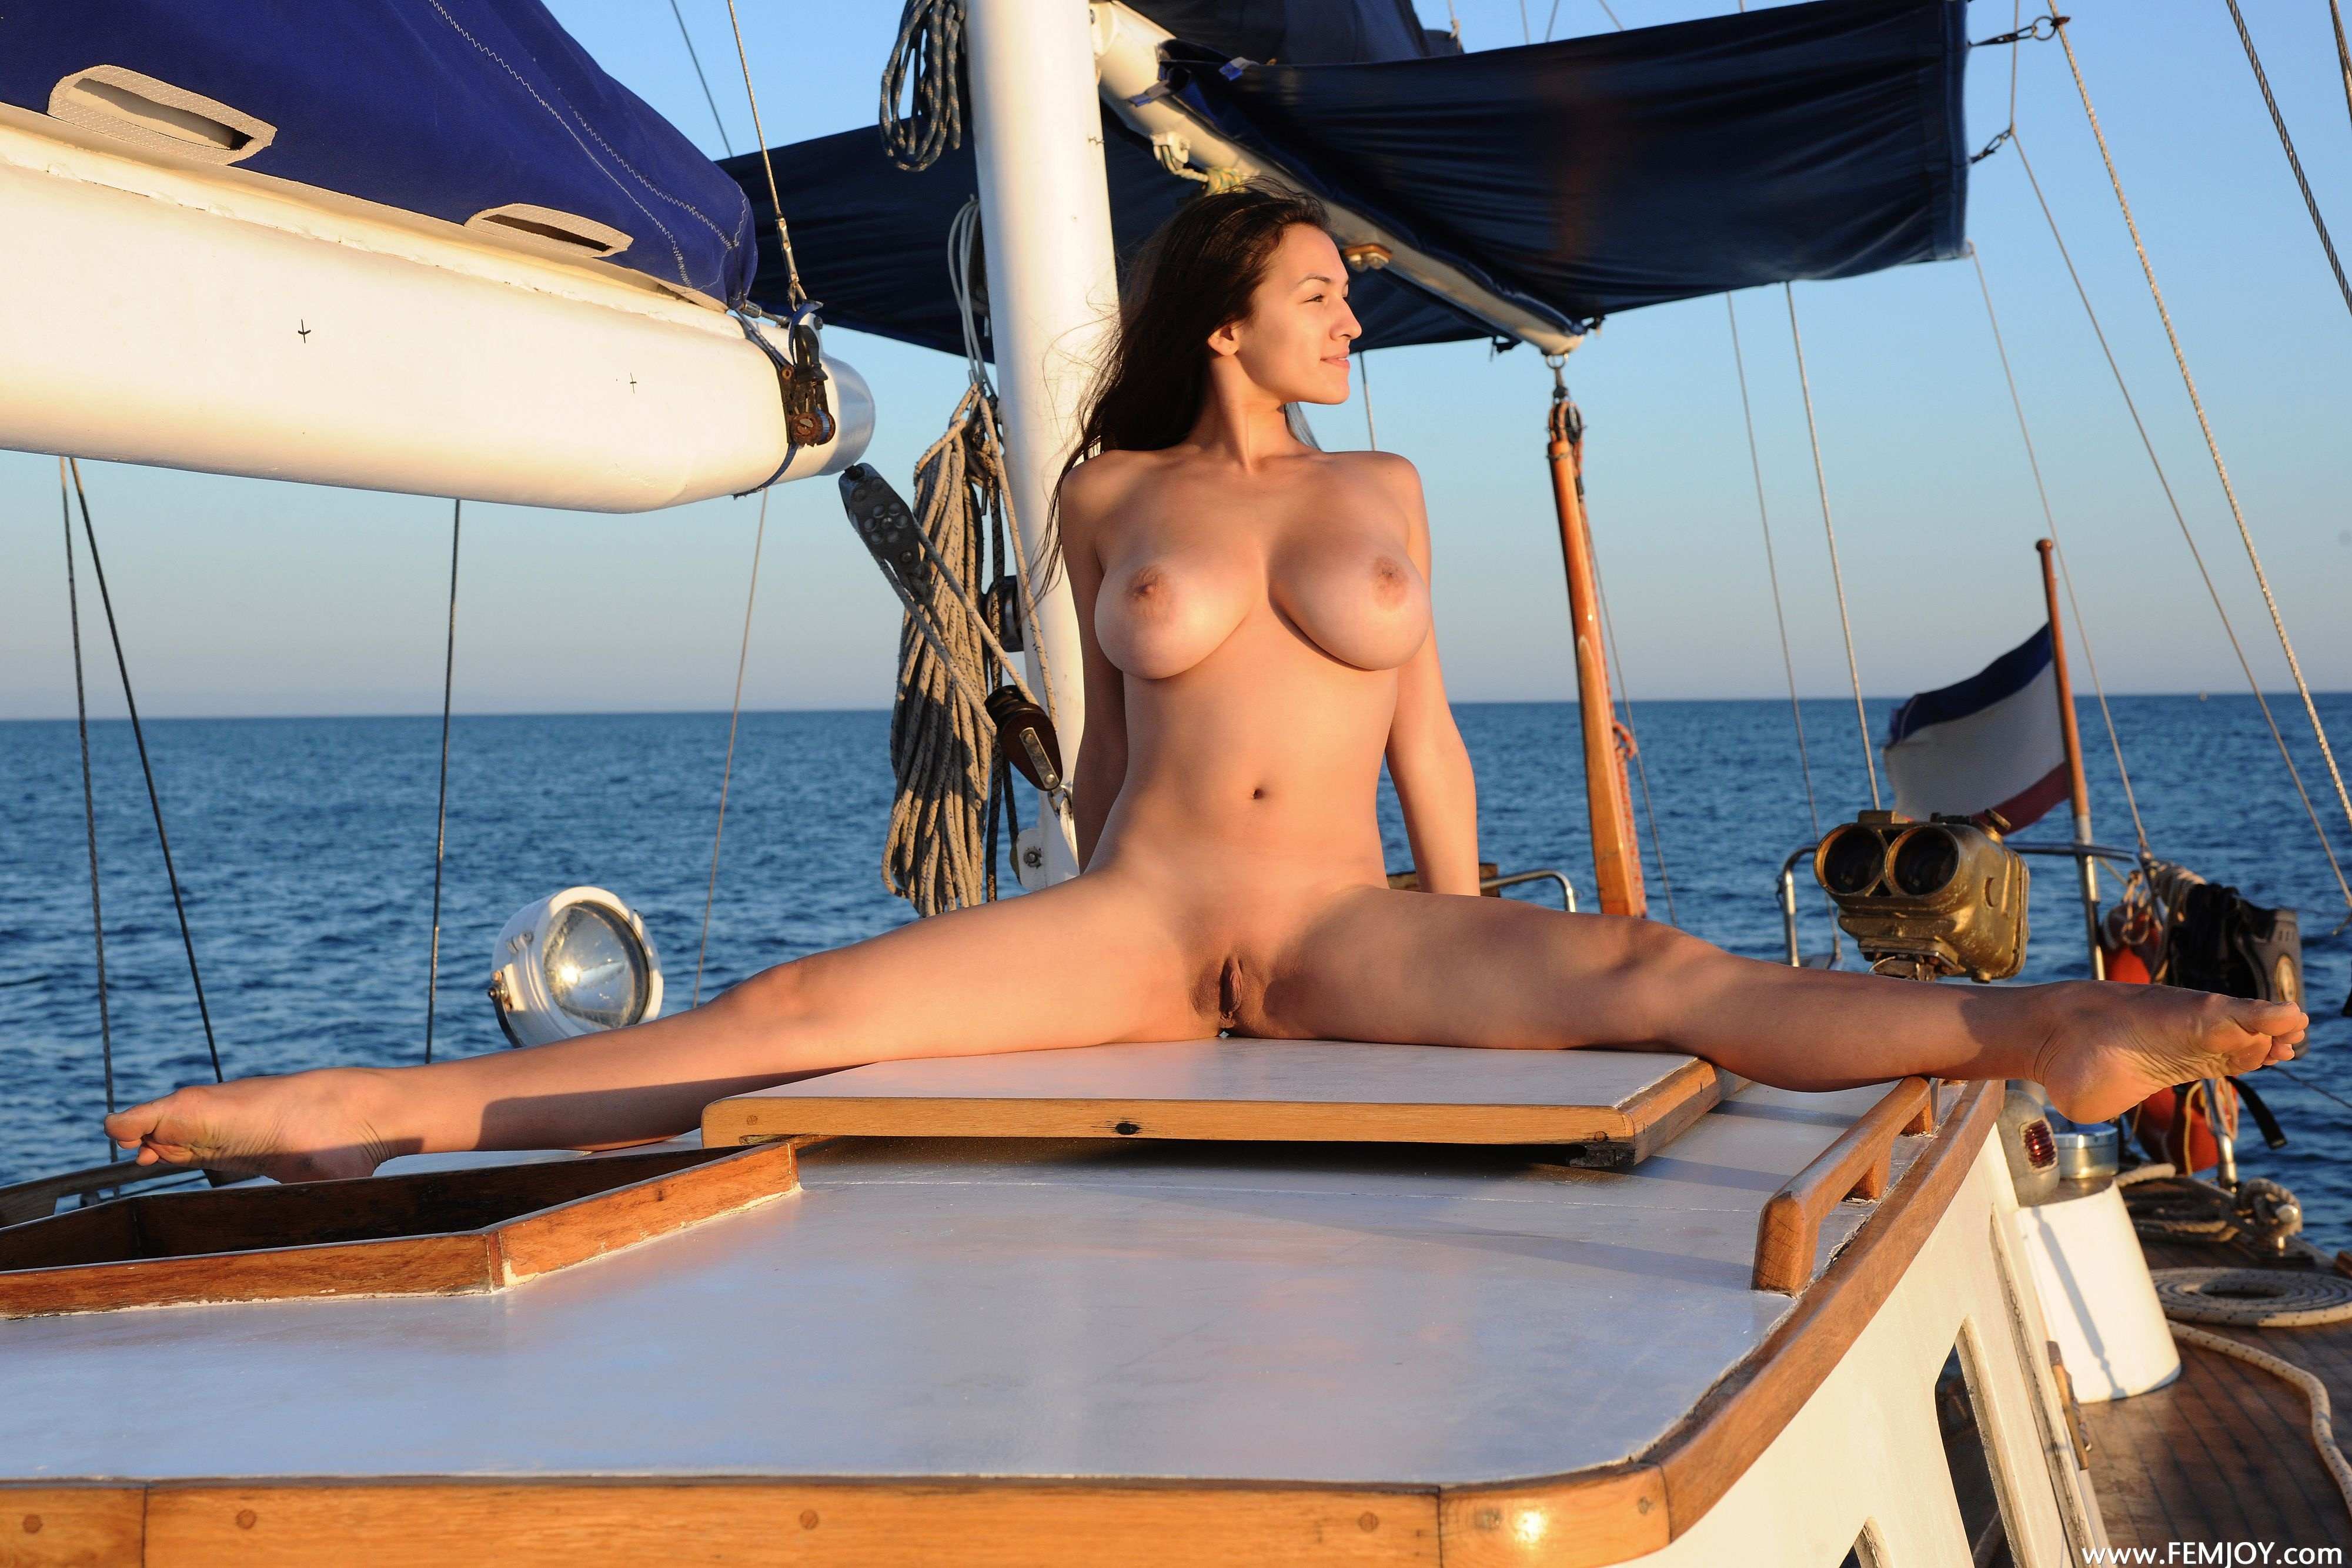 Has got! Xxx nudes on boats remarkable, very